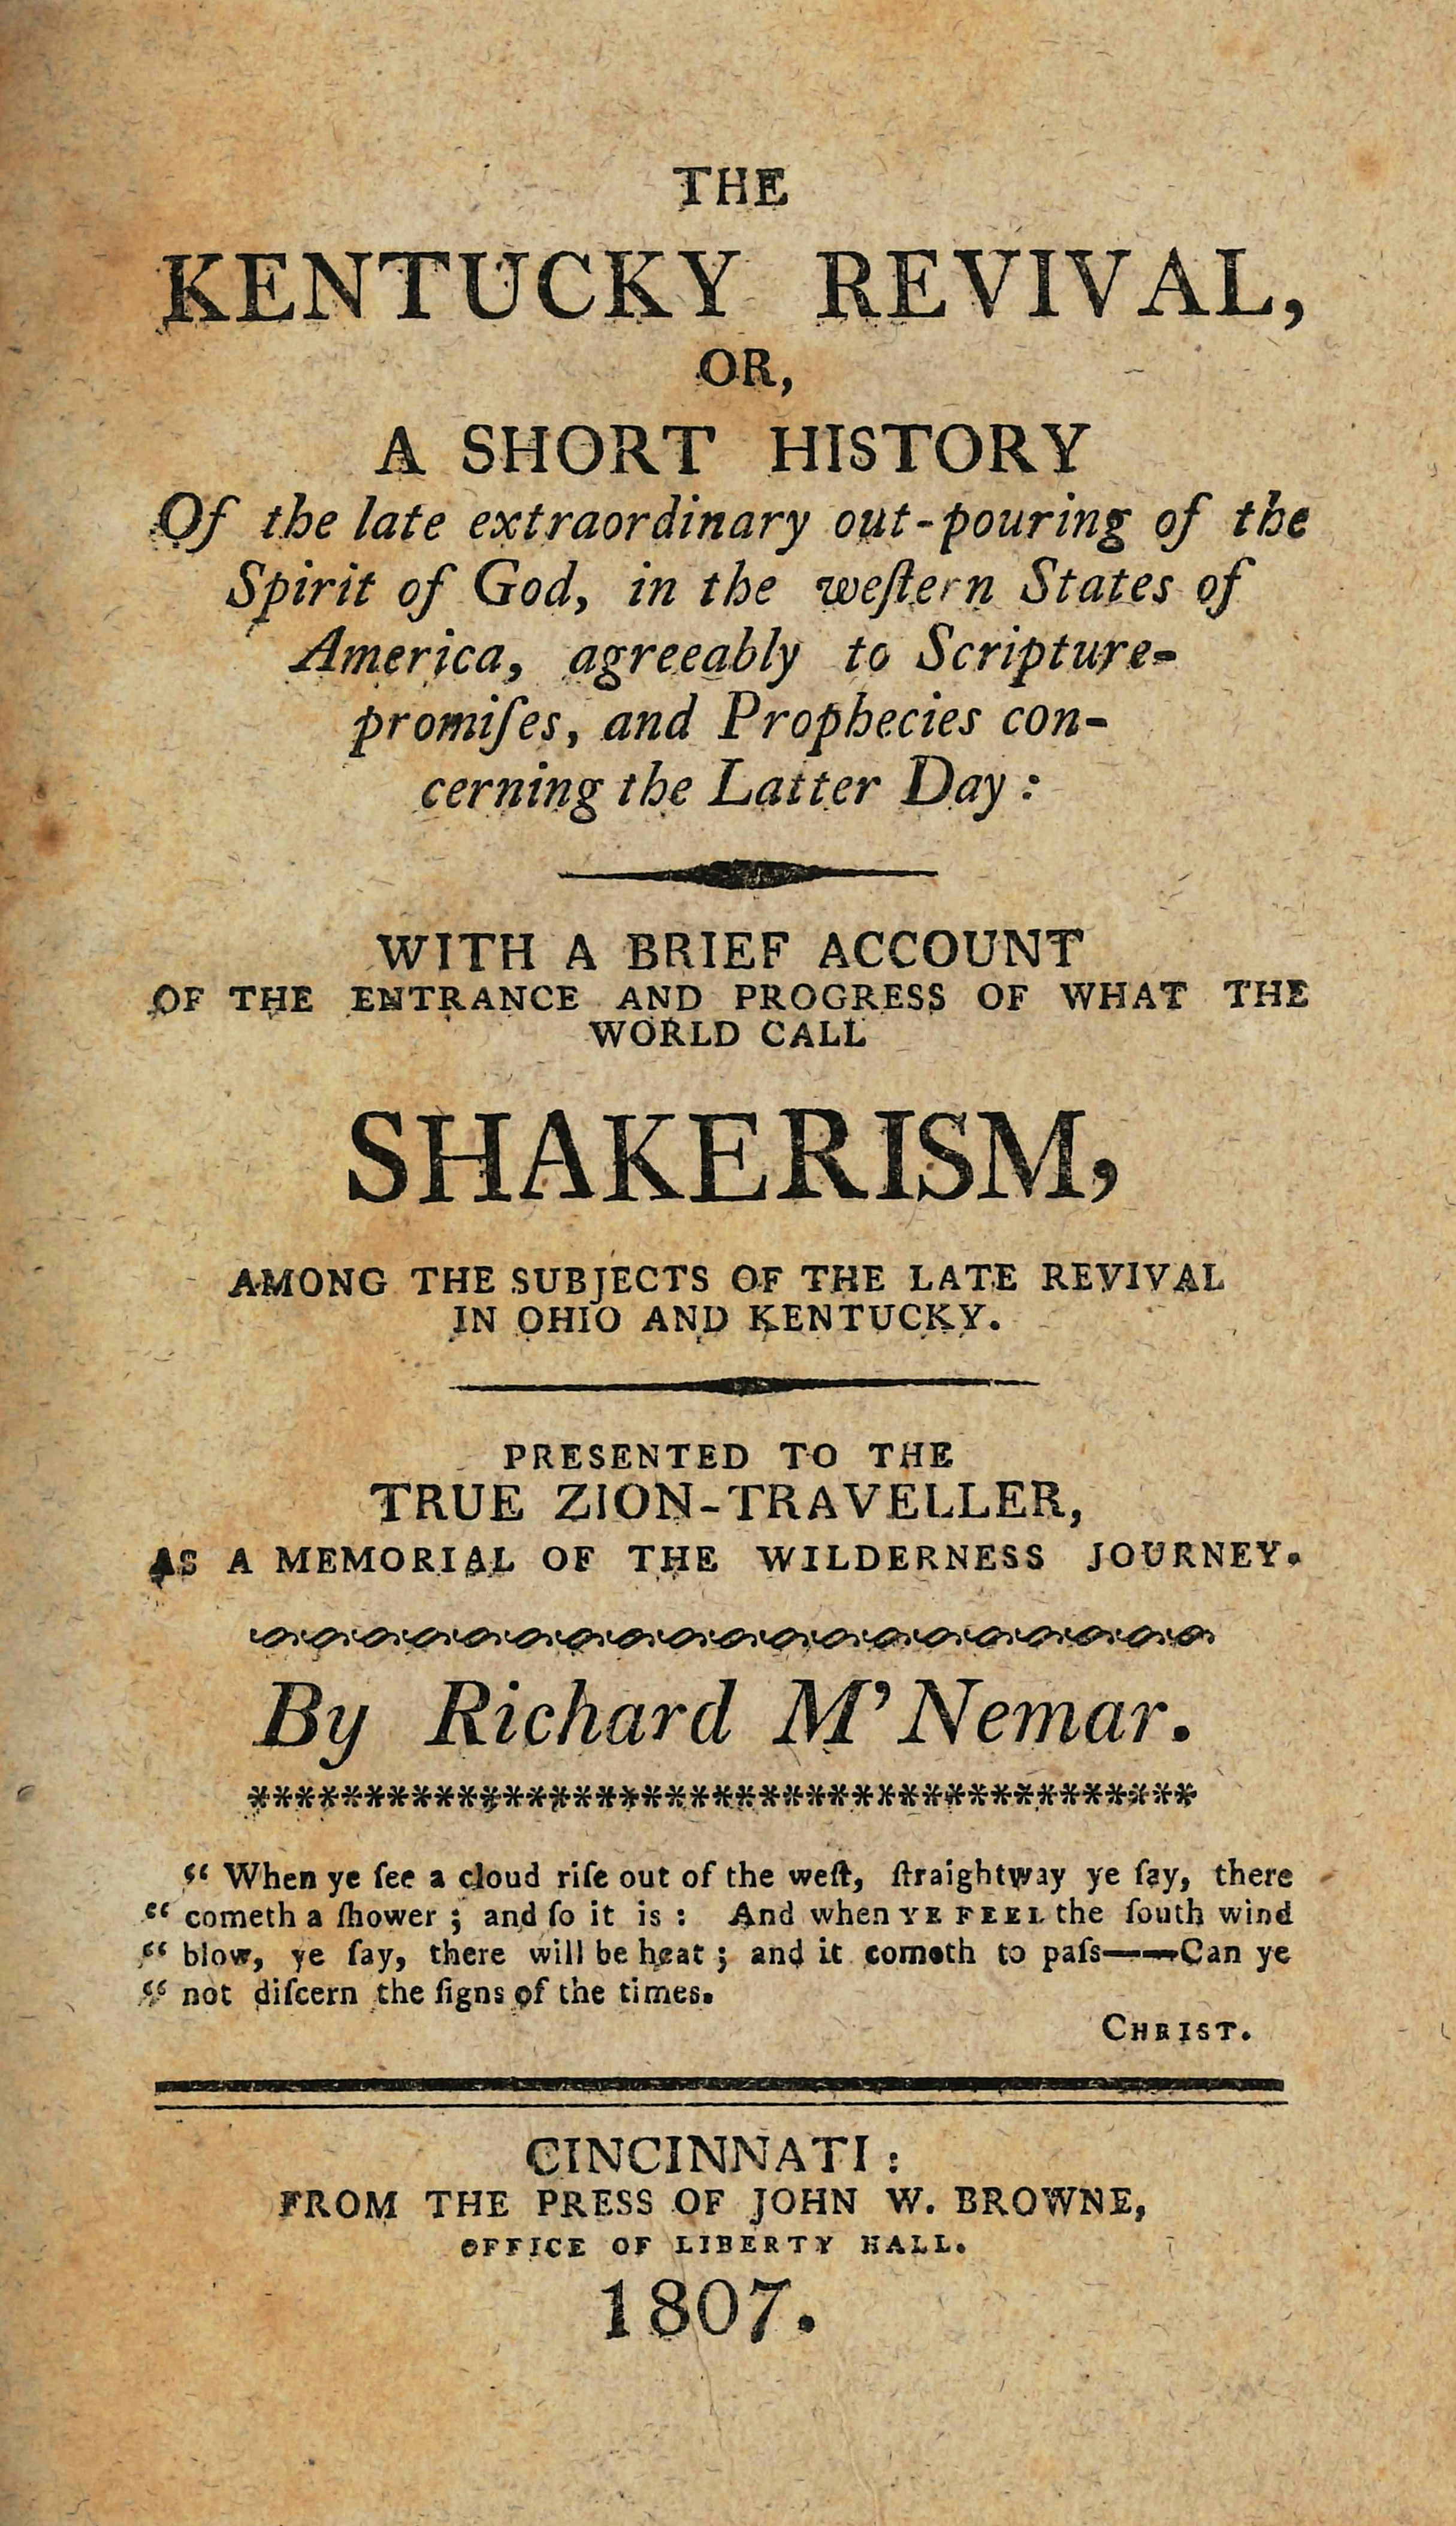 The Kentucky Revivalor, A Short History of the Late Extraordinary Out-Pouring of the Spirit of God, in the Western States of America